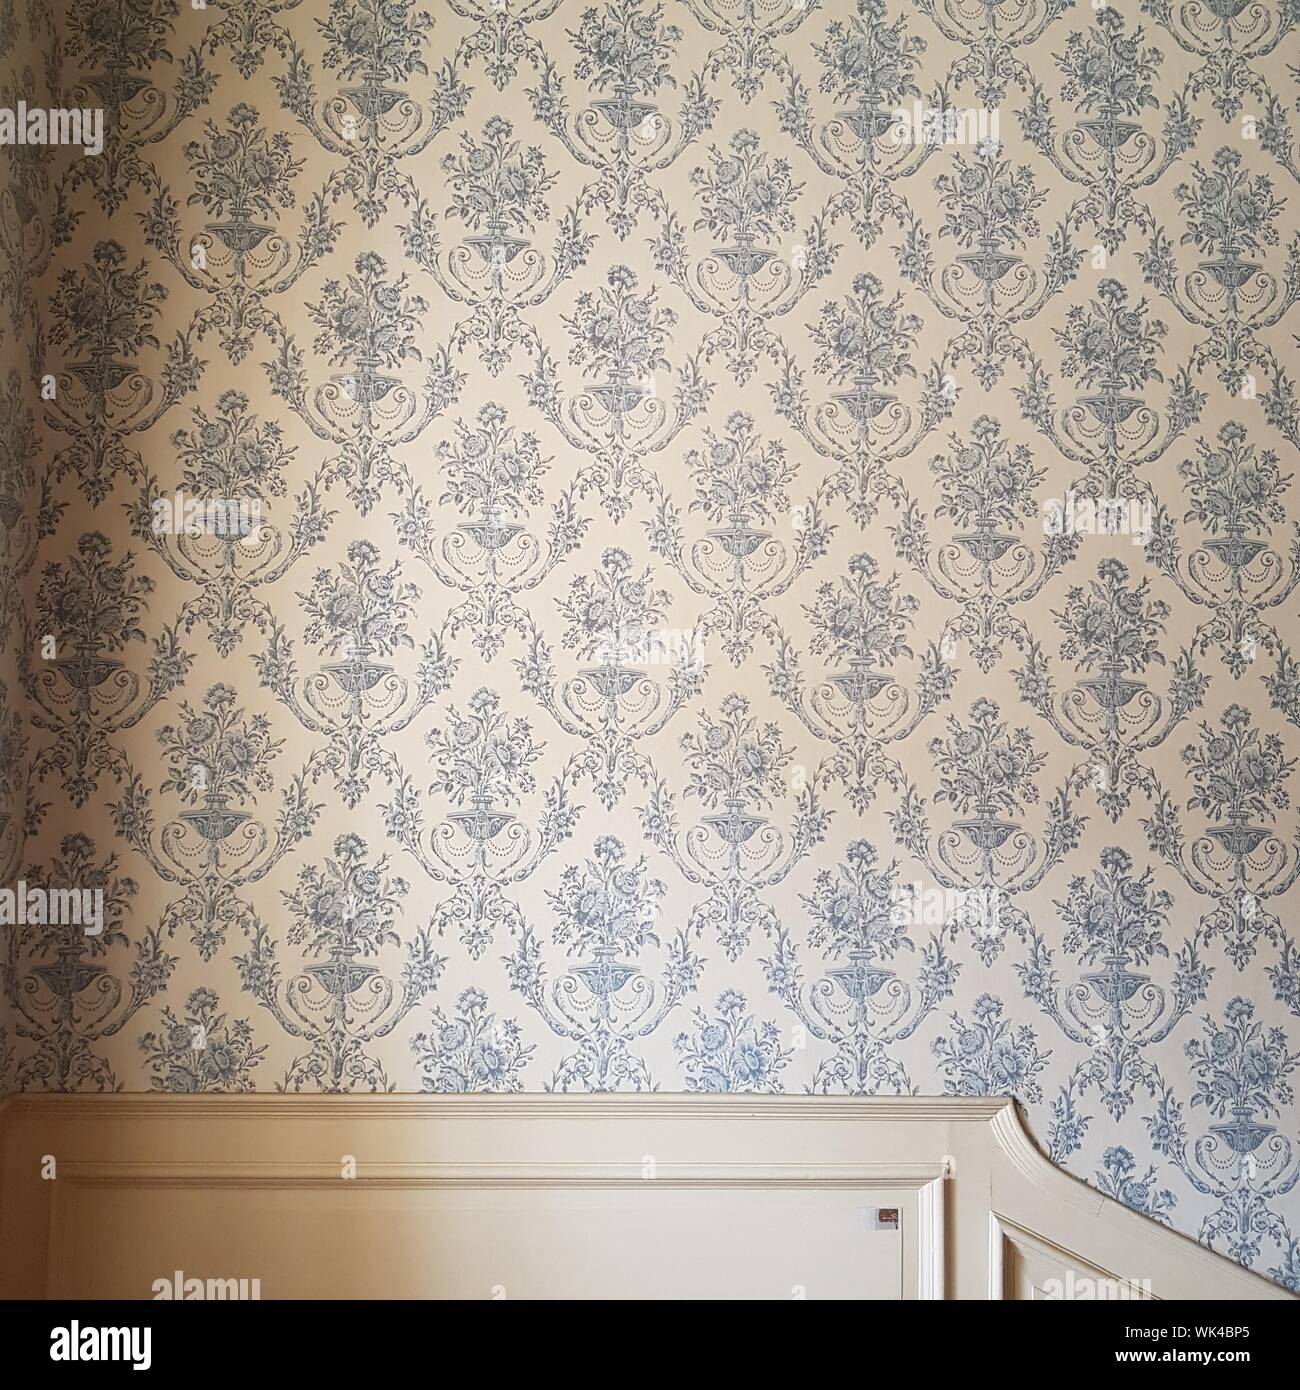 Patterned Wallpaper Home Stock Photos Patterned Wallpaper